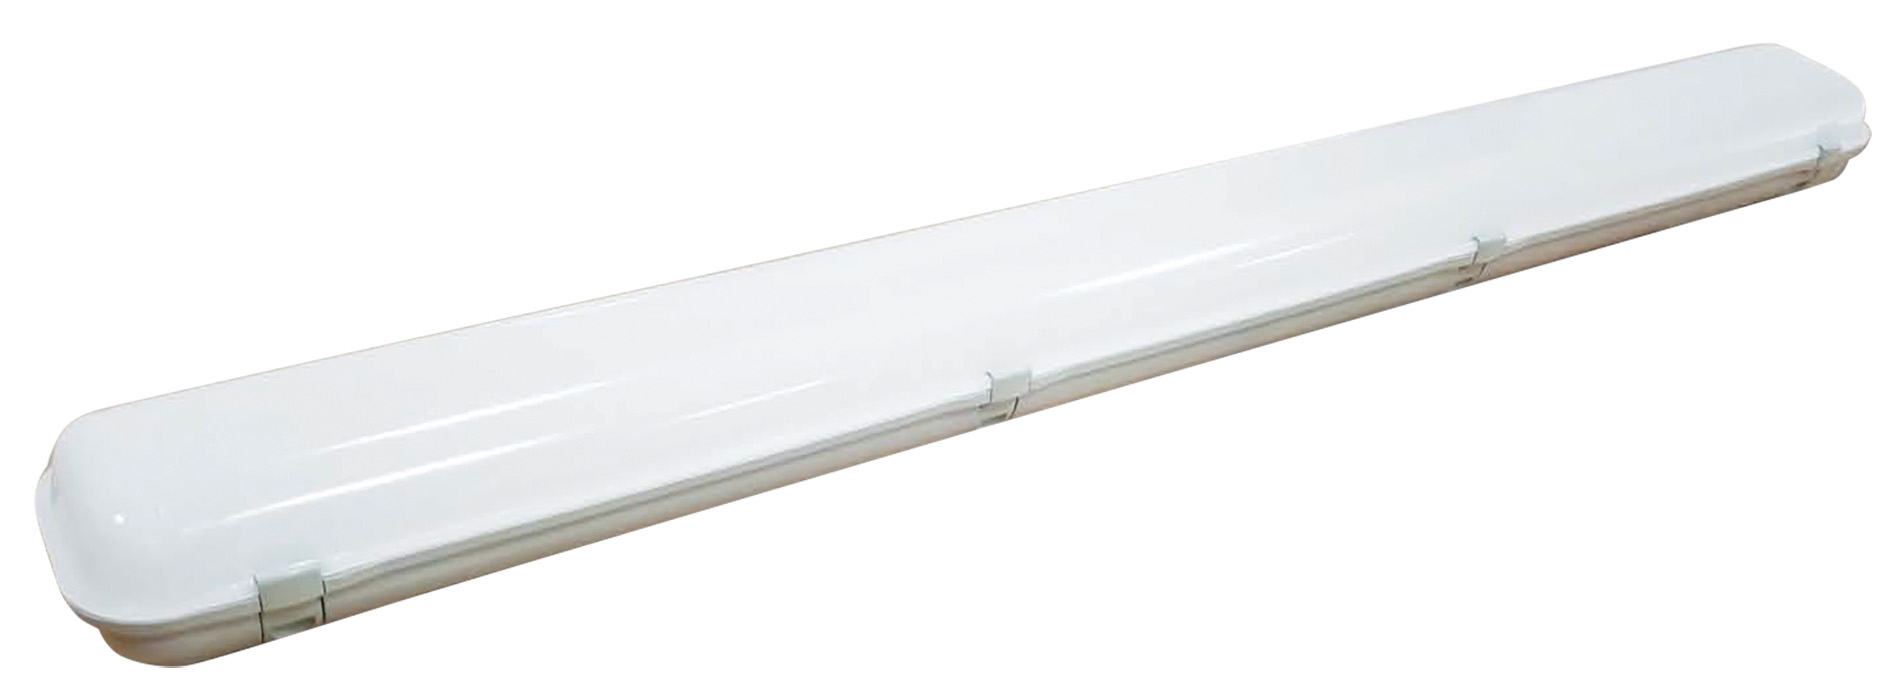 ORR158-1574EO3S 32W LED Batten Light